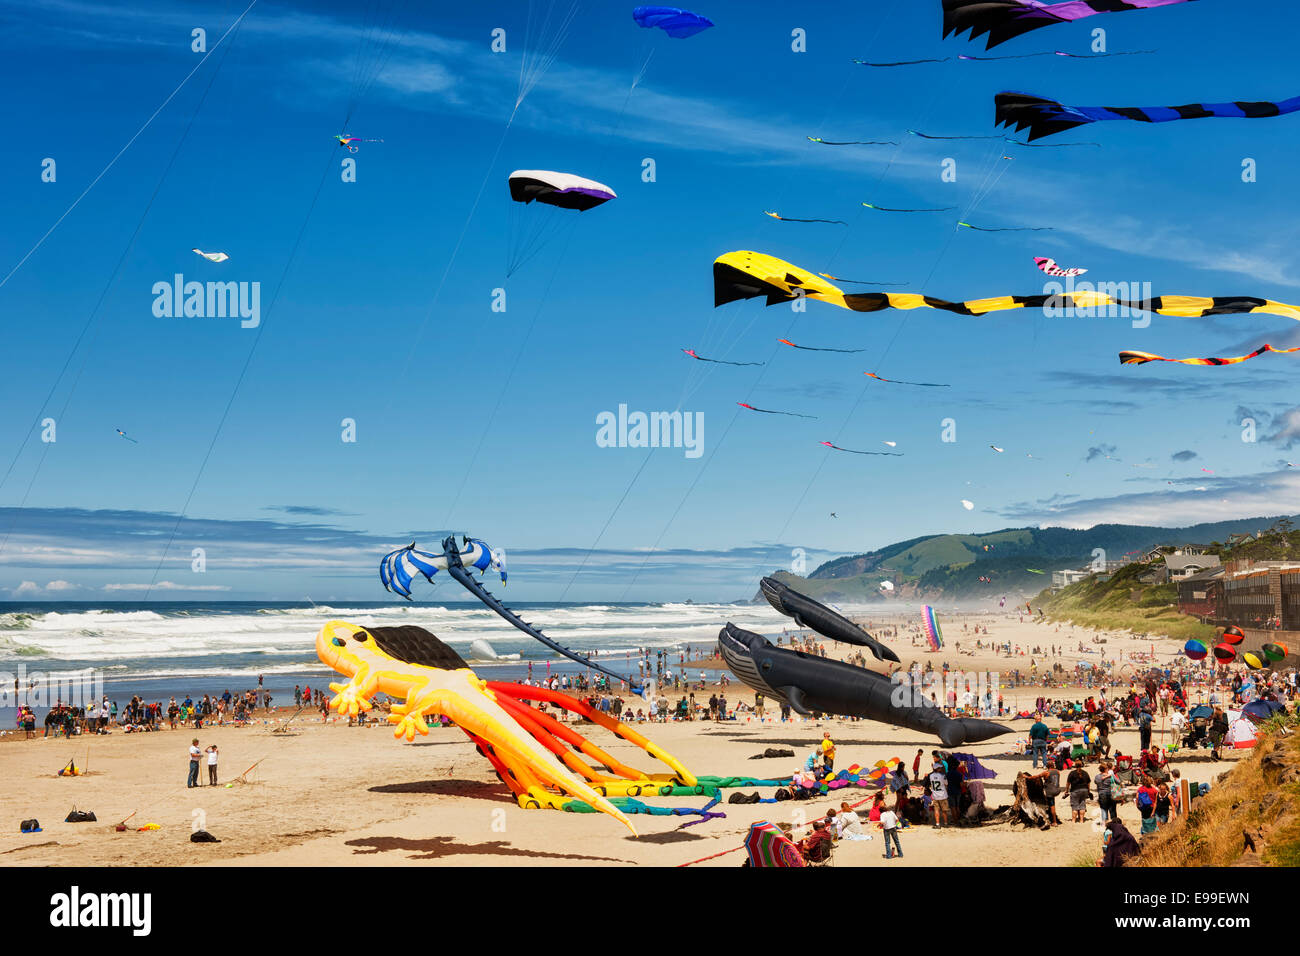 Kites of all sizes and shapes fly at the annual Lincoln City Kite Festival held on Oregon's central coastline - Stock Image